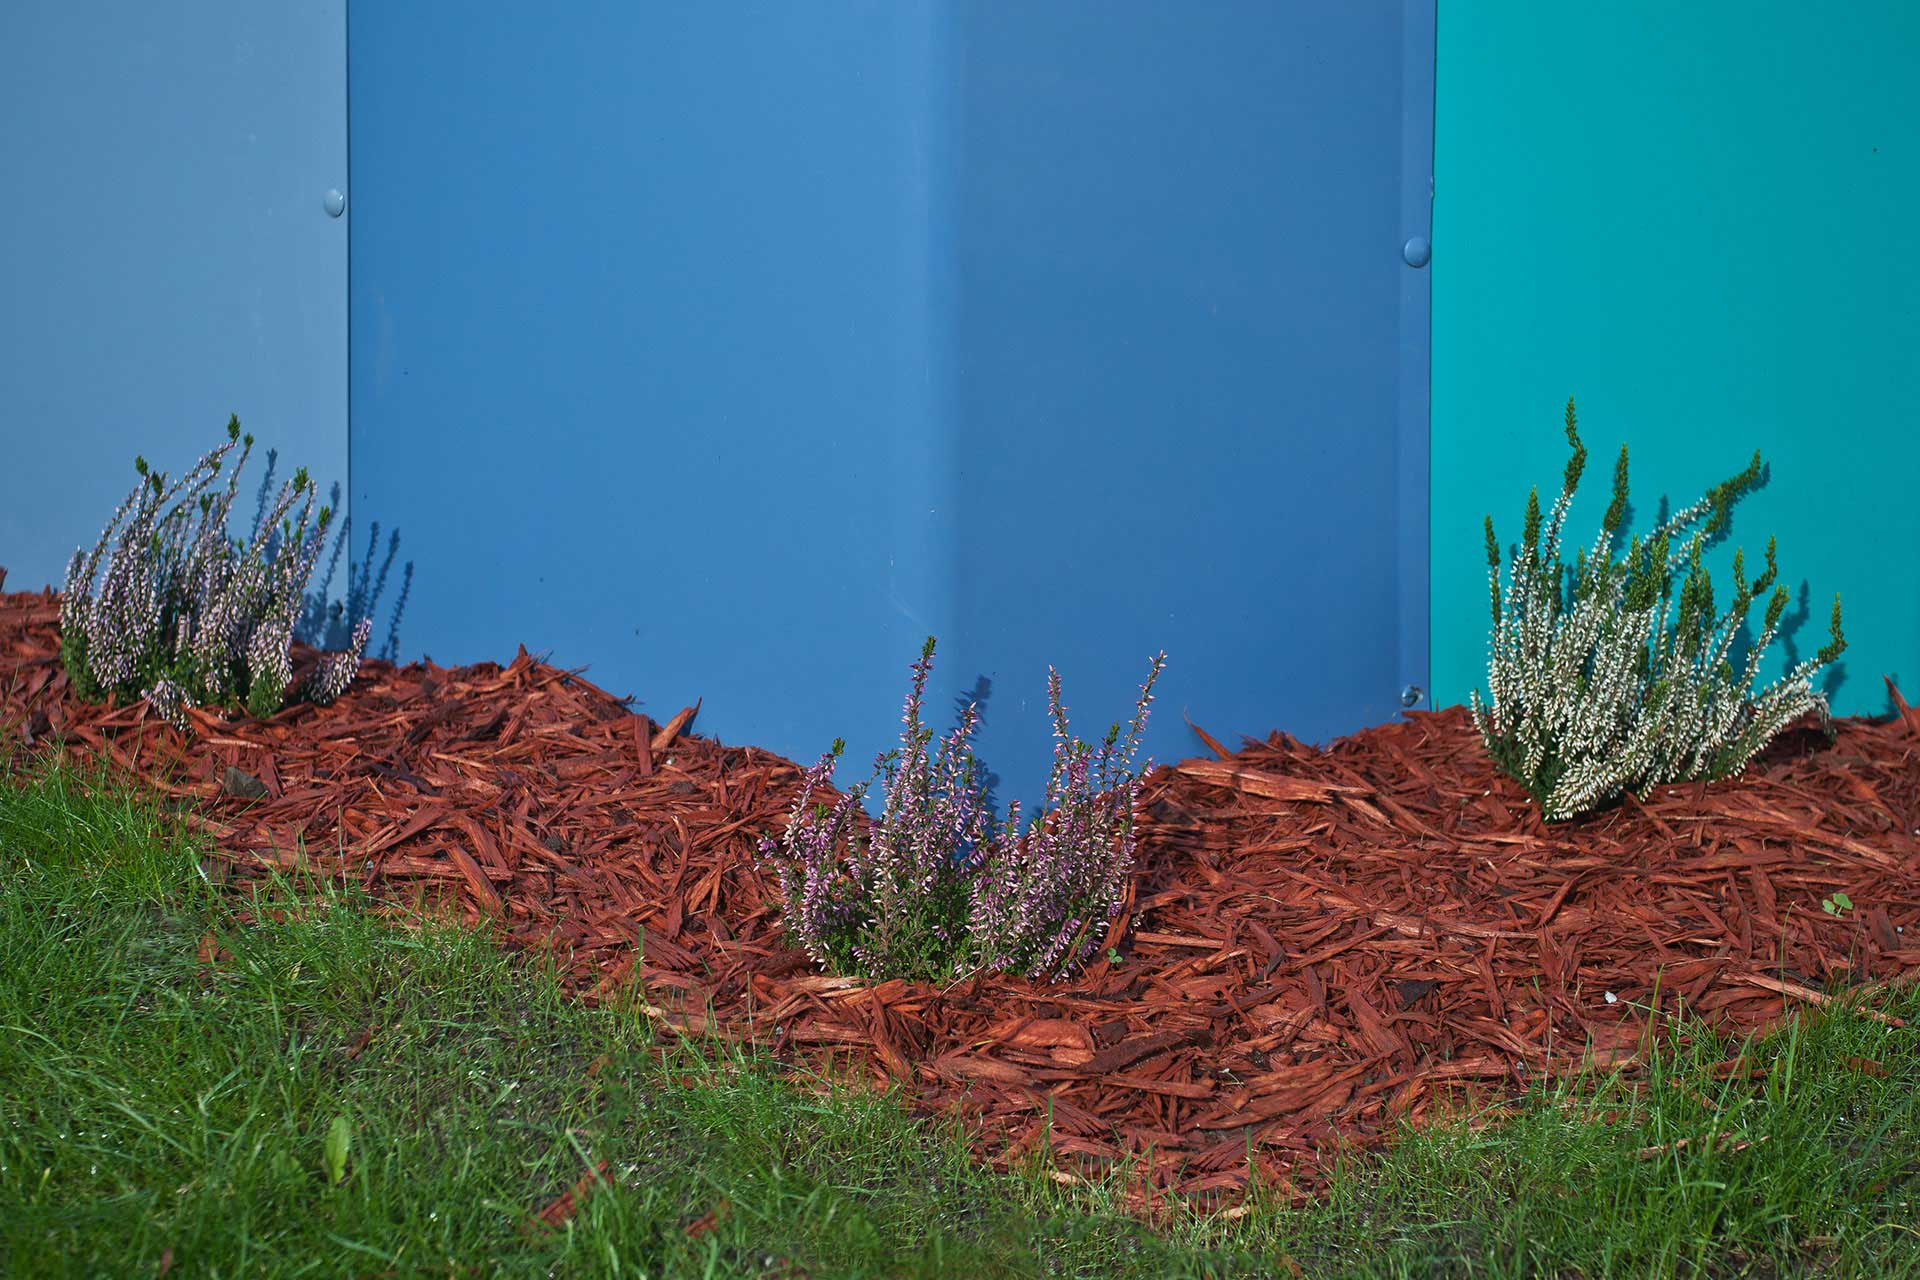 planted shrubs next to colourful mental health fence designed by Boex